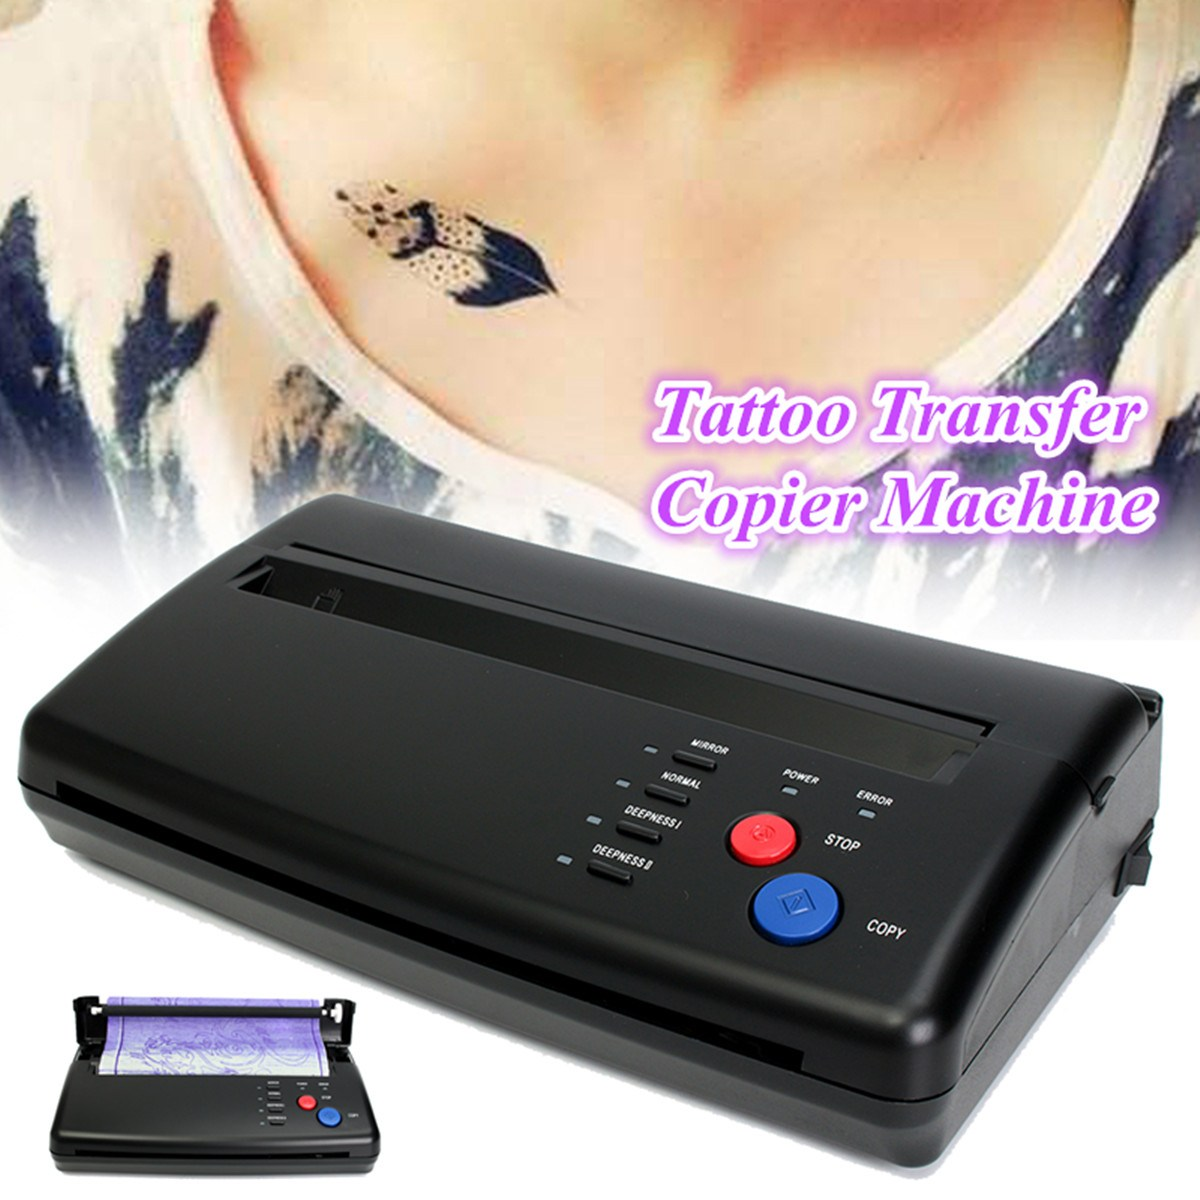 Black Tattoo Transfer Machine Printer Drawing Thermal Stencil Maker Copier For A5-A4 Tattoo Transfer Paper Australia Plug Black tattoo thermal stencil transfer paper maker copier printer machine ws d200 gift